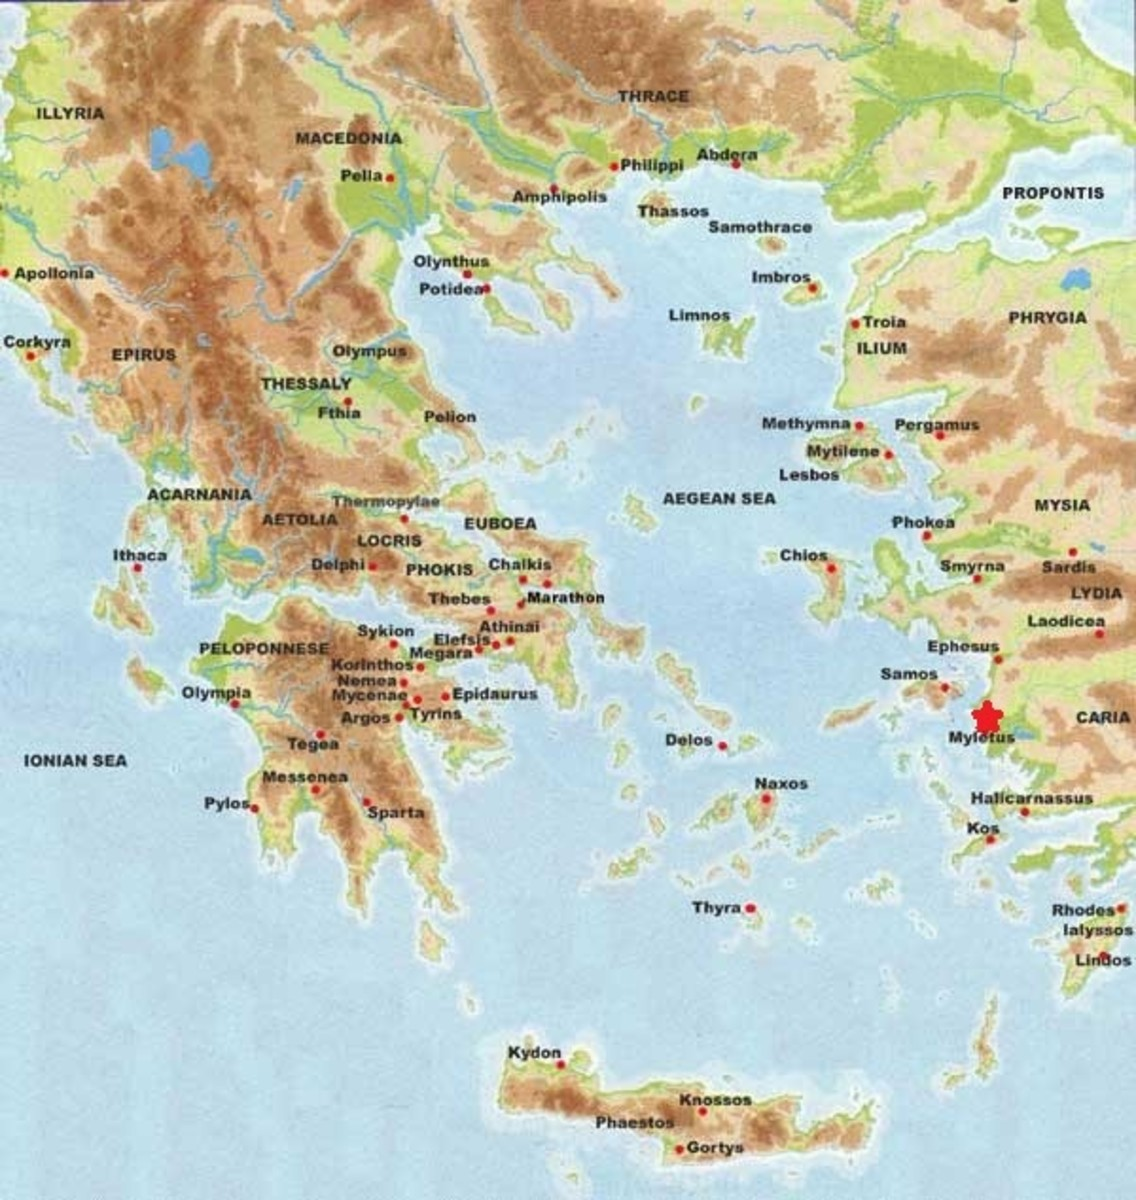 Map of ancient Greece showing Miletus (Myletus) on the western coast of modern-day Turkey.